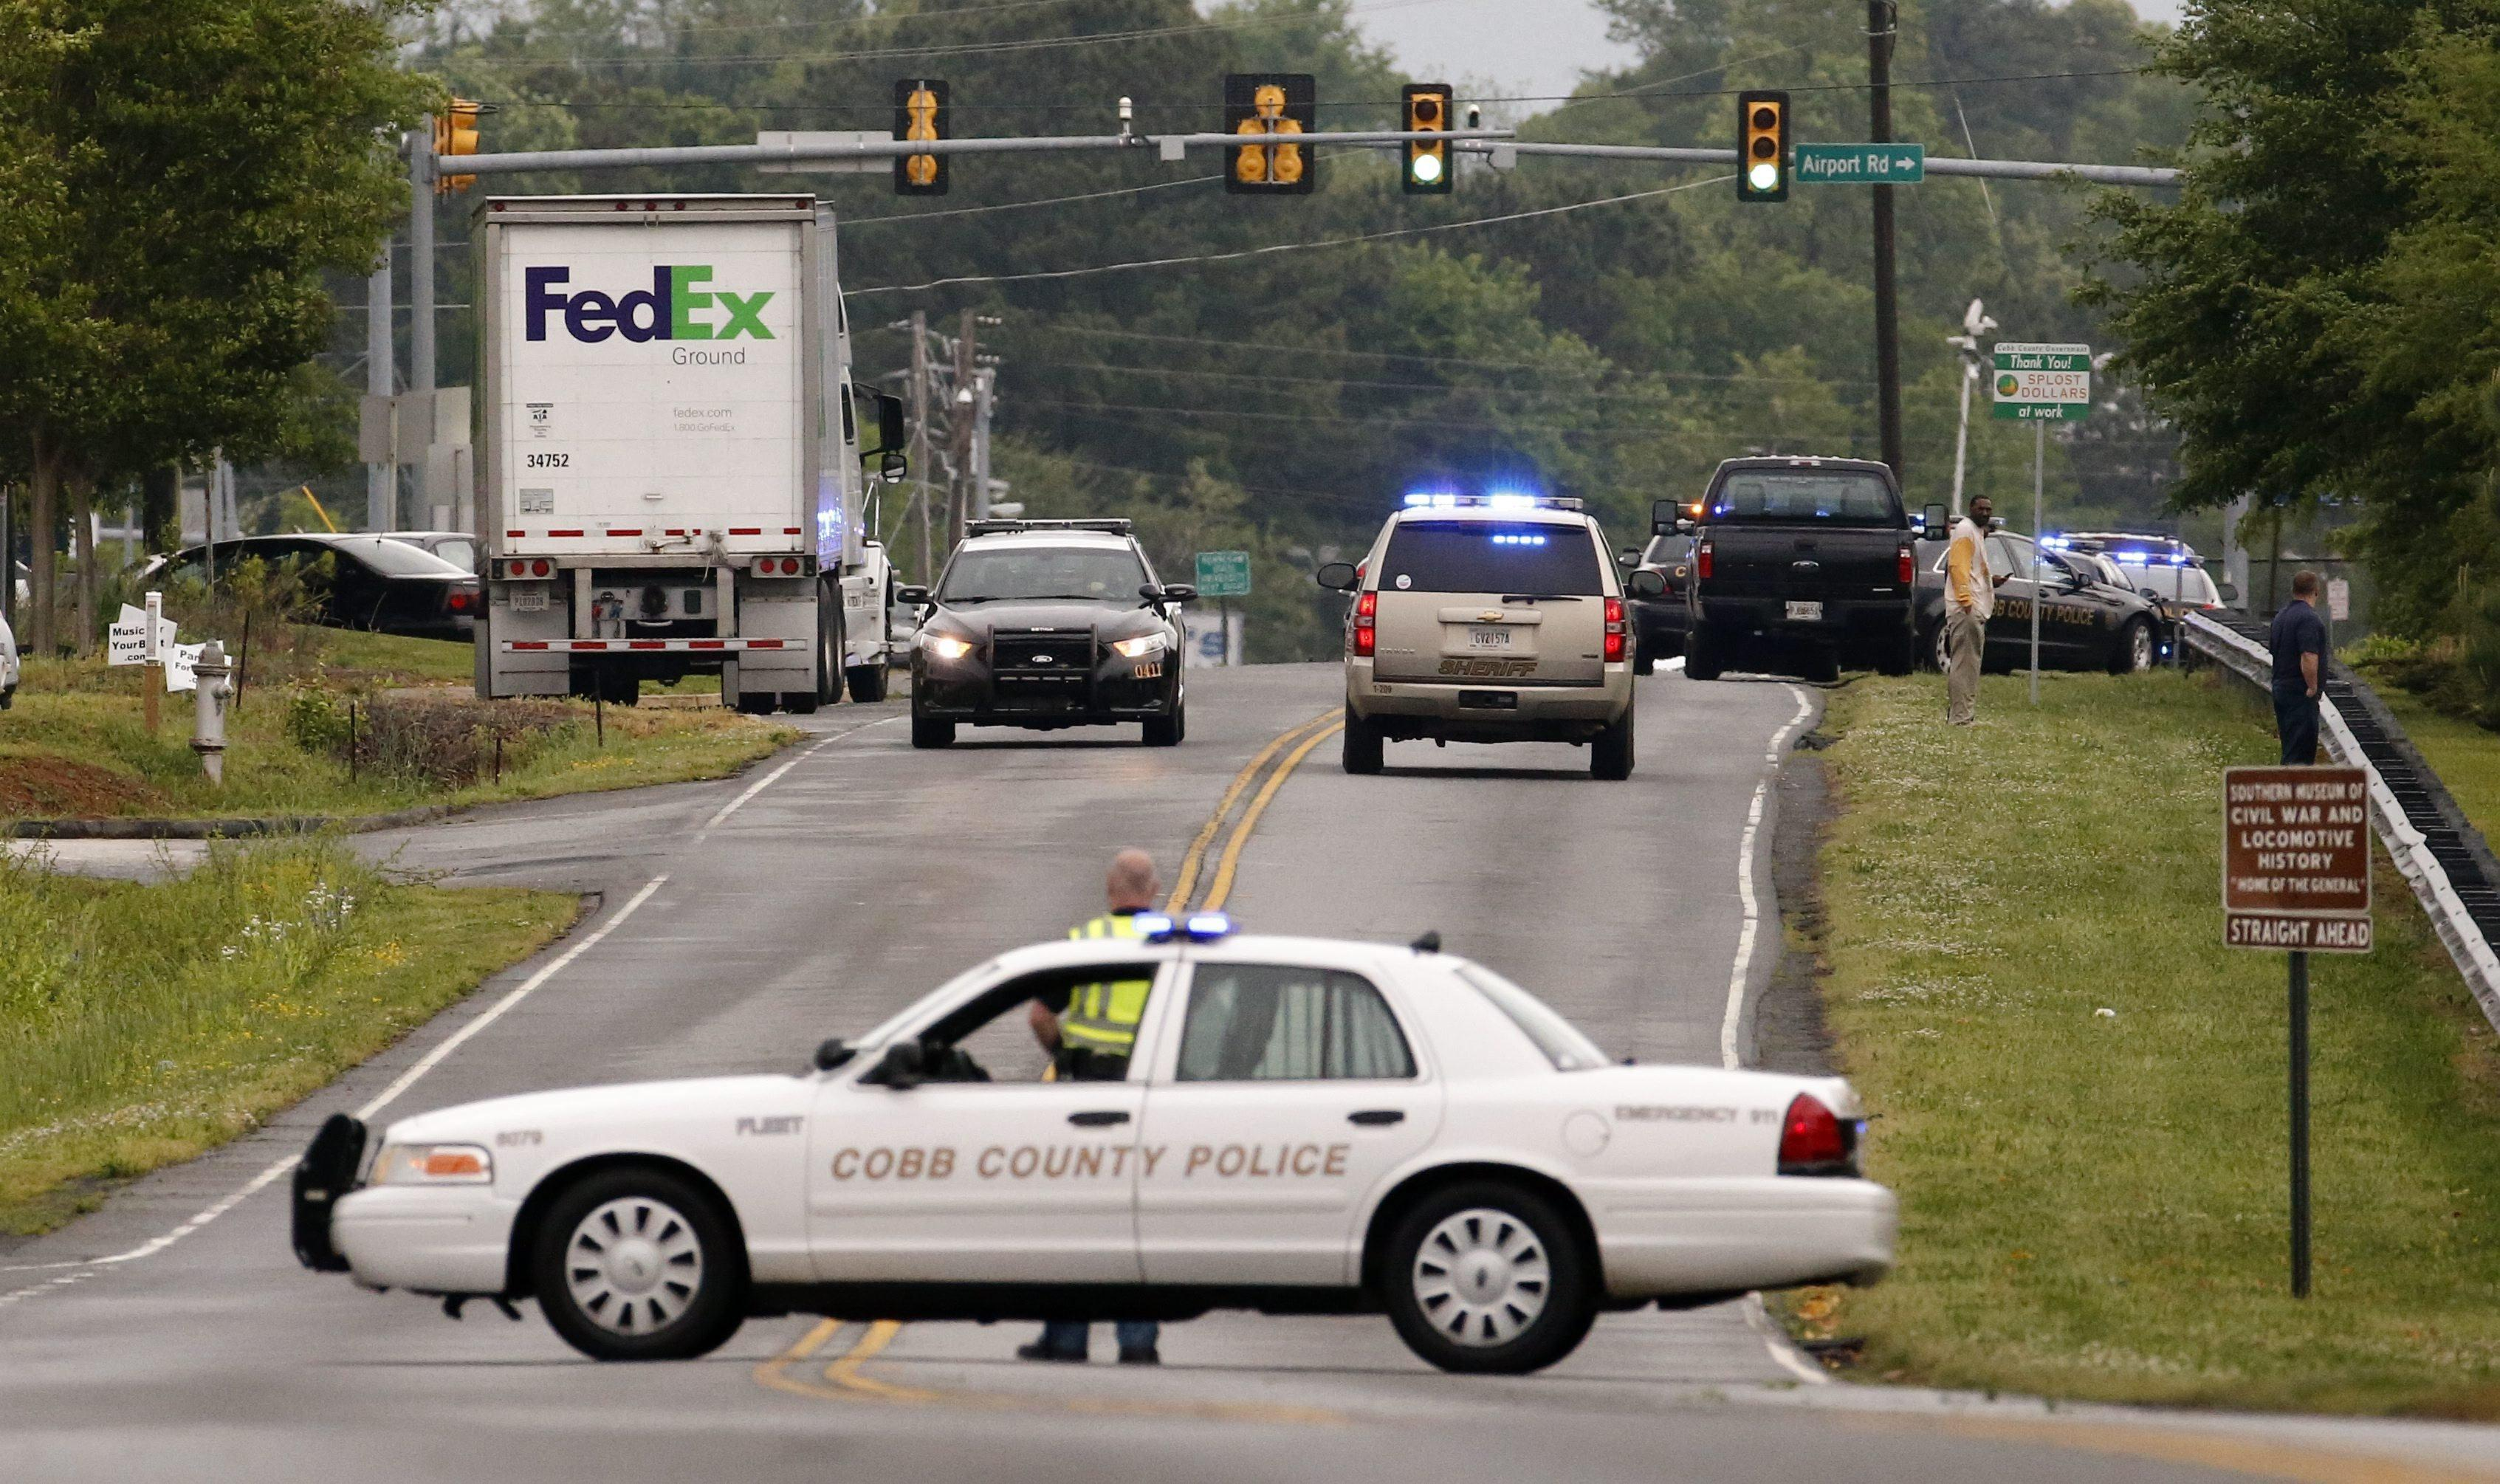 Image: Shooting at FedEx facility in Kennesaw, Georgia